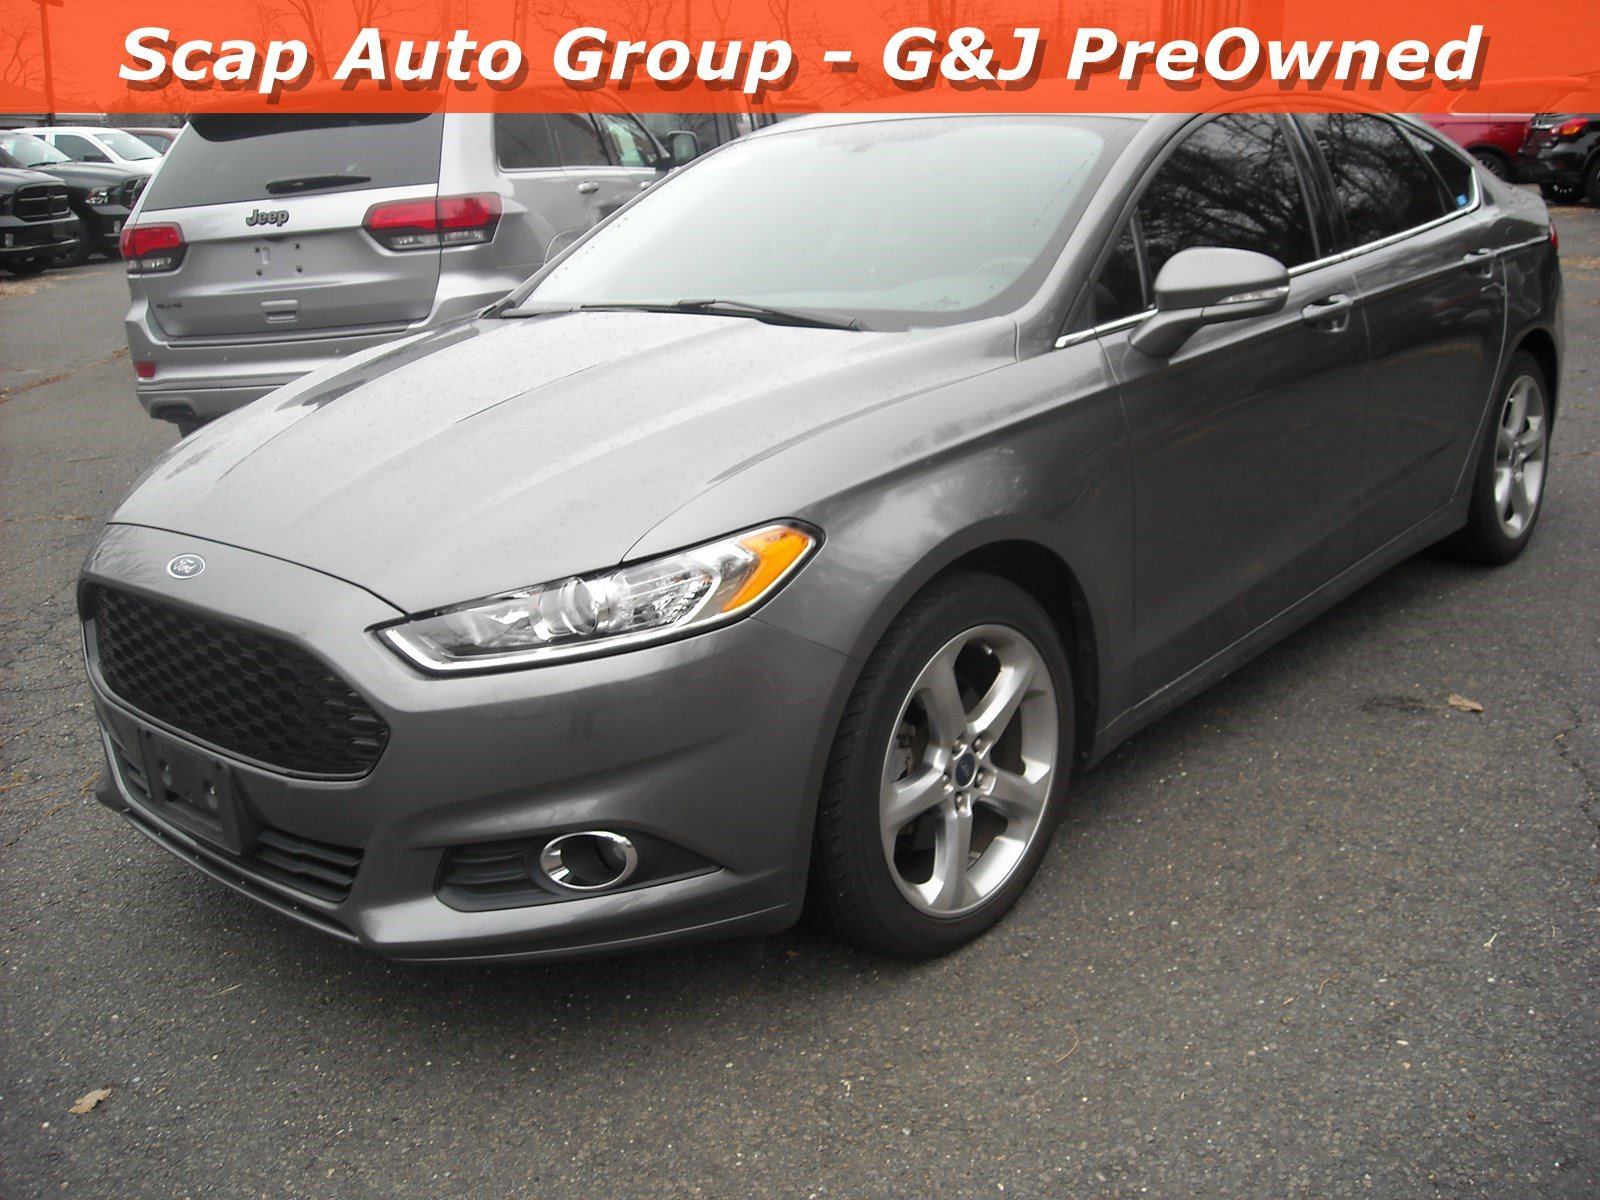 Used 2014 Ford Fusion SE Sedan for sale in Fairfield CT